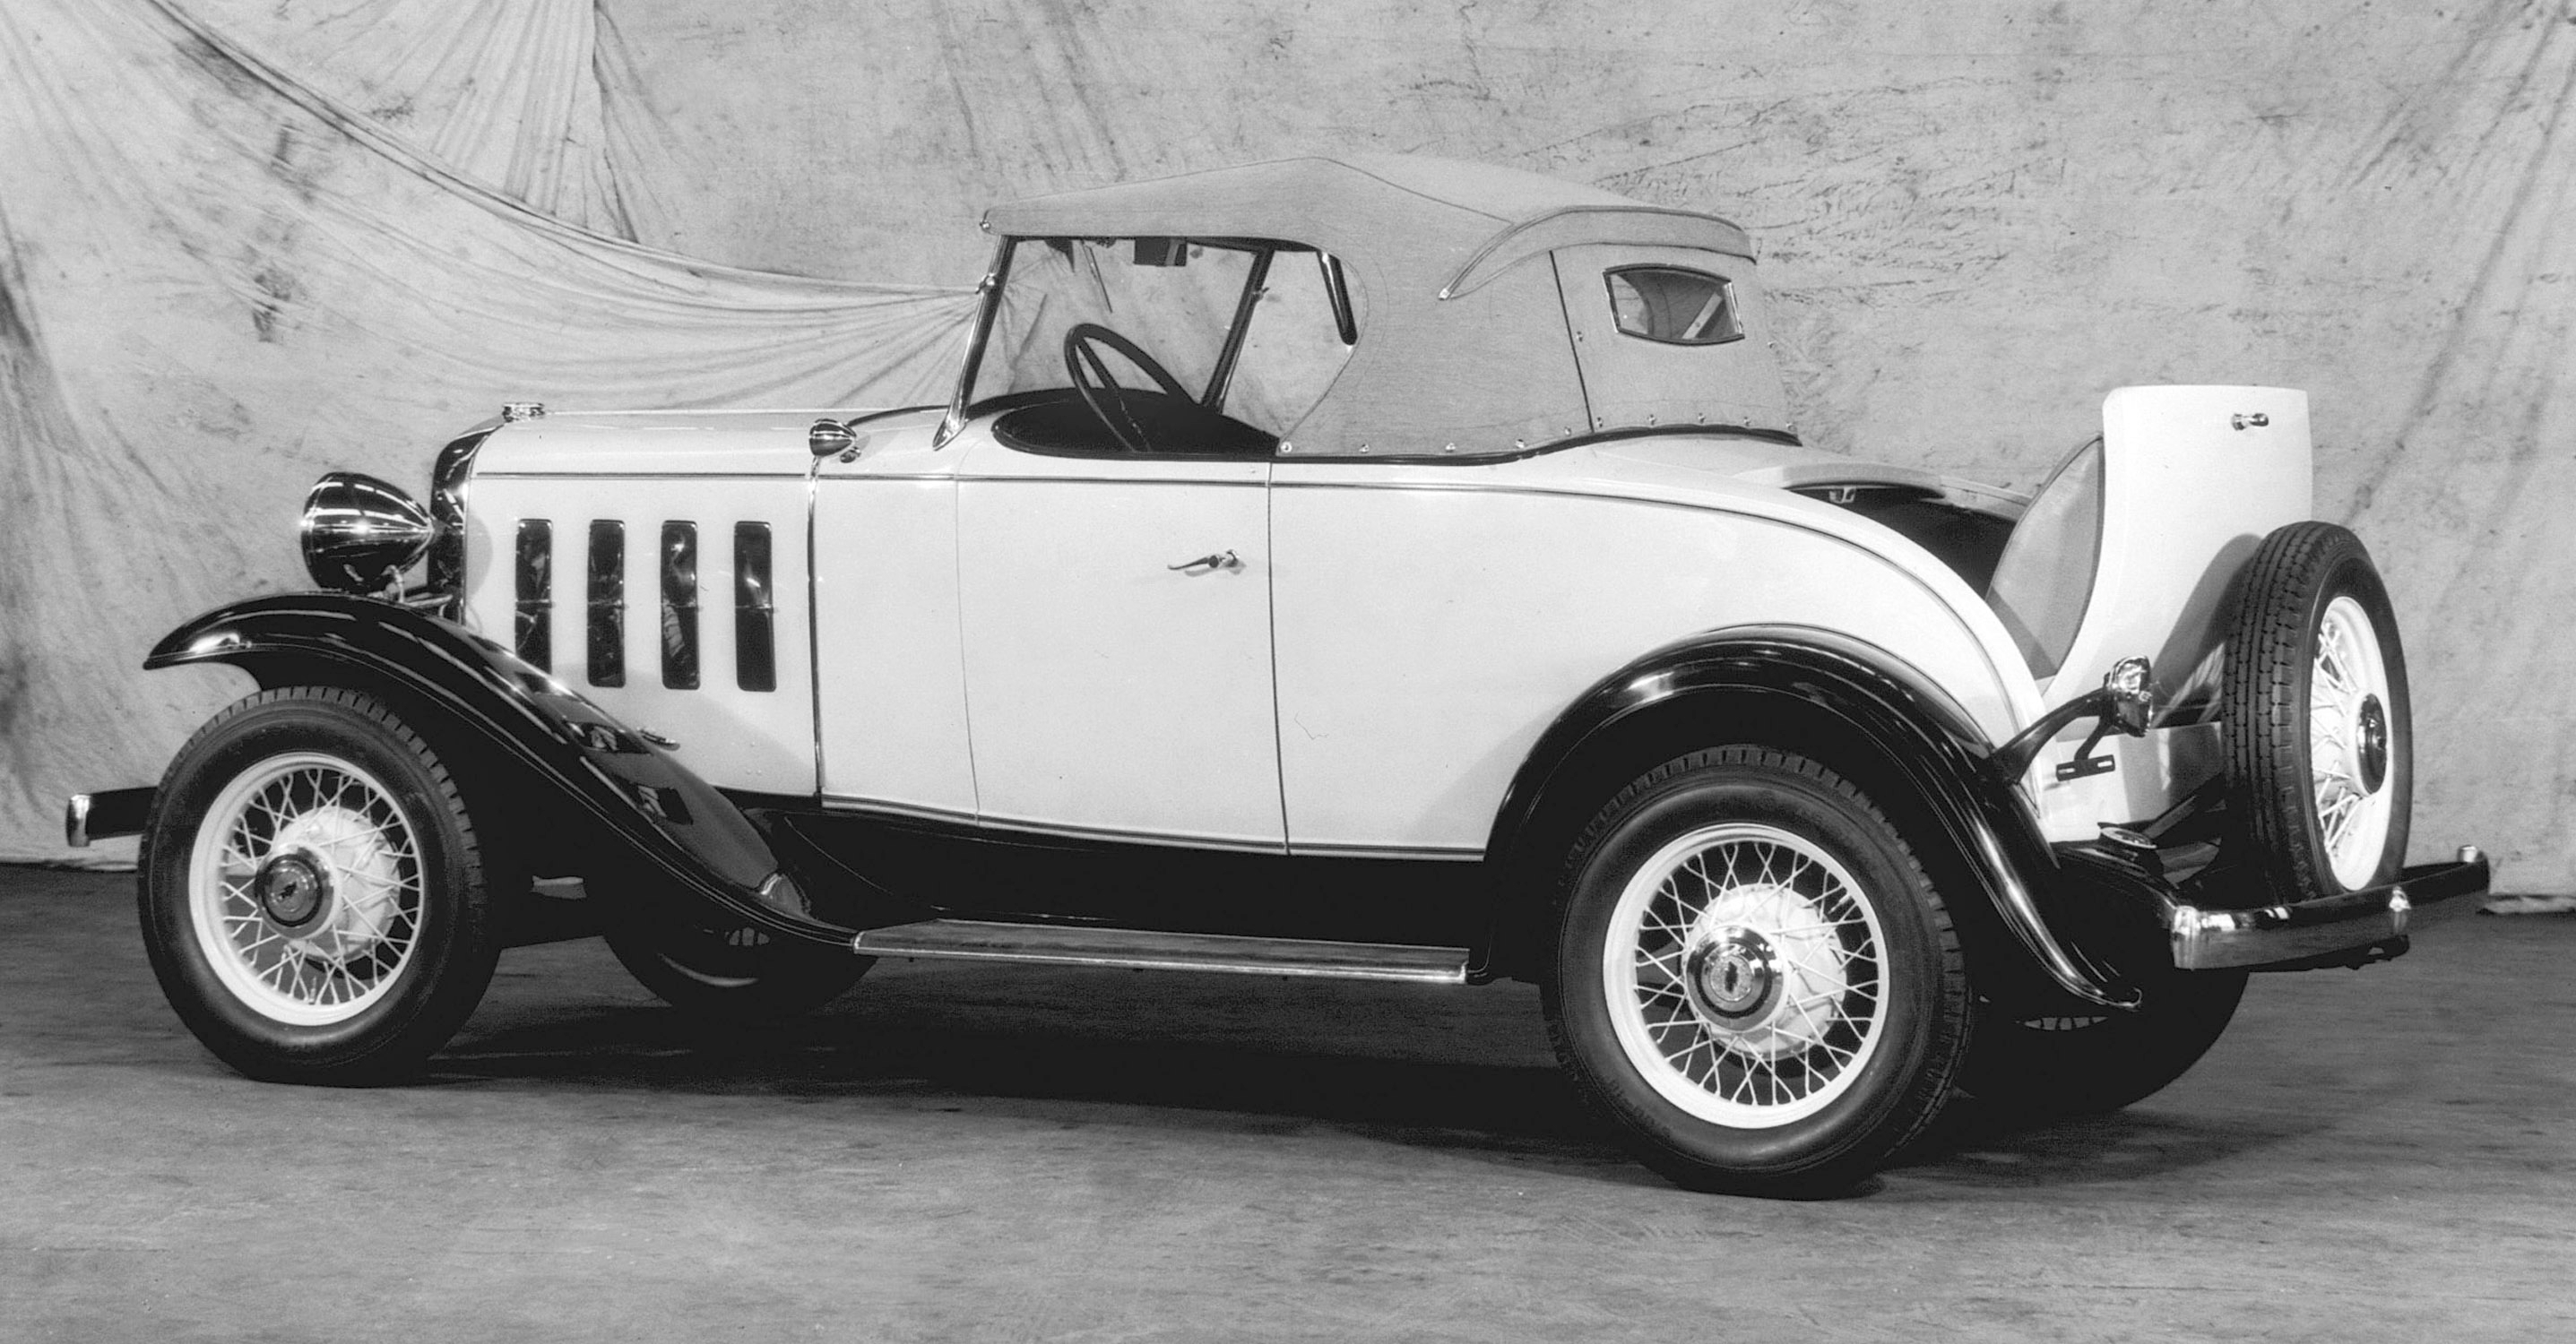 Arriving in the midst of the Great Depression, the plucky 1932 Chevrolets were powered by a sturdy ÒCast-Iron WonderÓ 6-cylinder engine. The Õ32s were, as advertised, ÒThe Great American Value.Ó